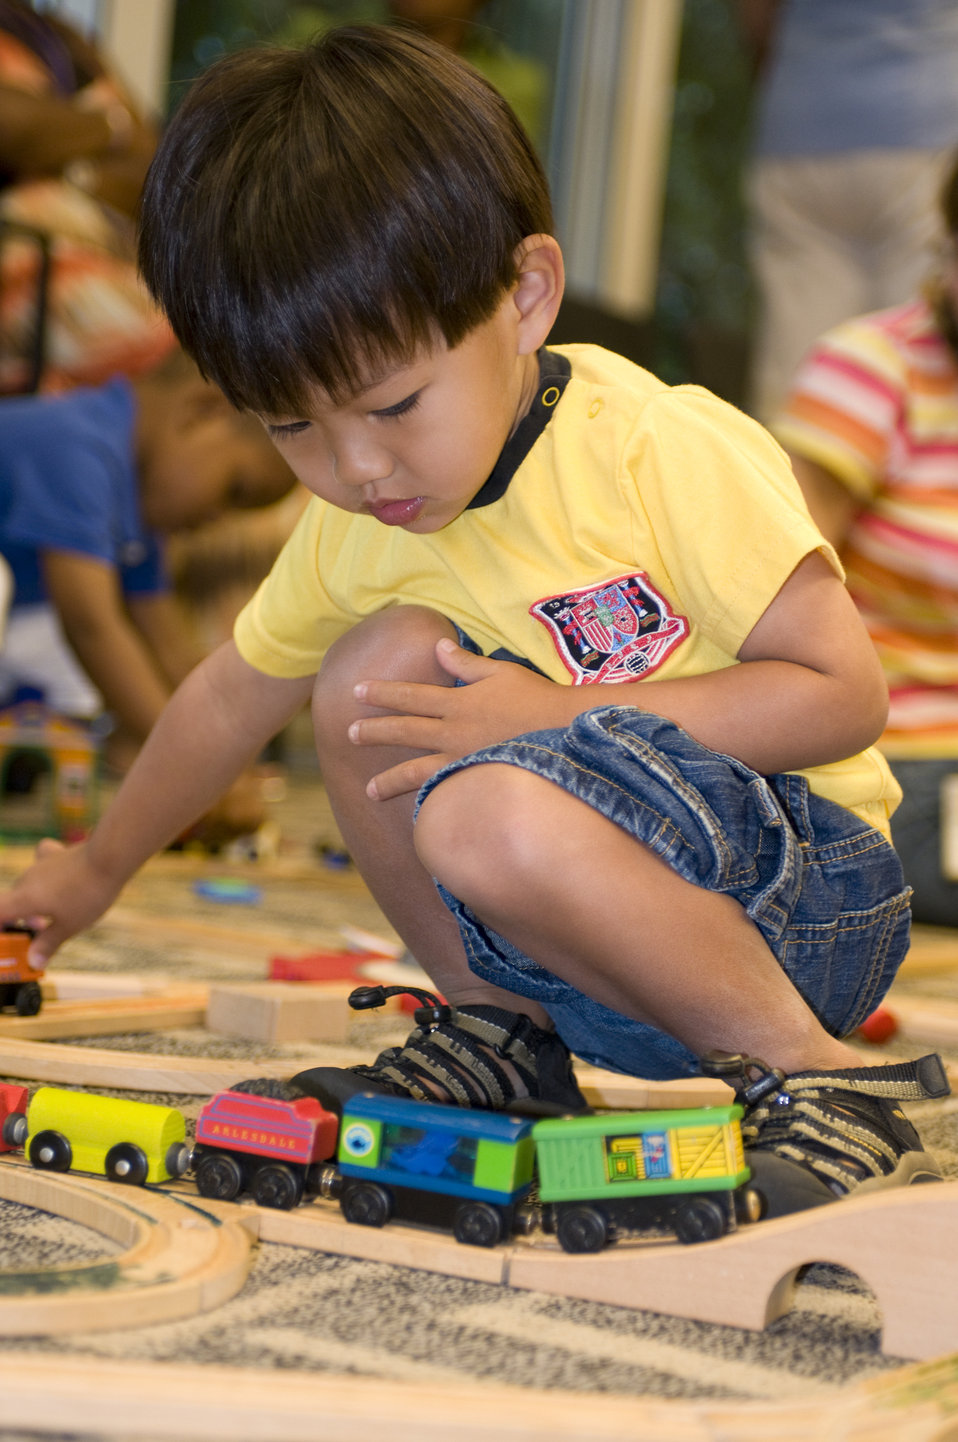 While in a daycare setting, this young boy was playing with a small wooden train set, pushing the little train cars along the grooved wooden